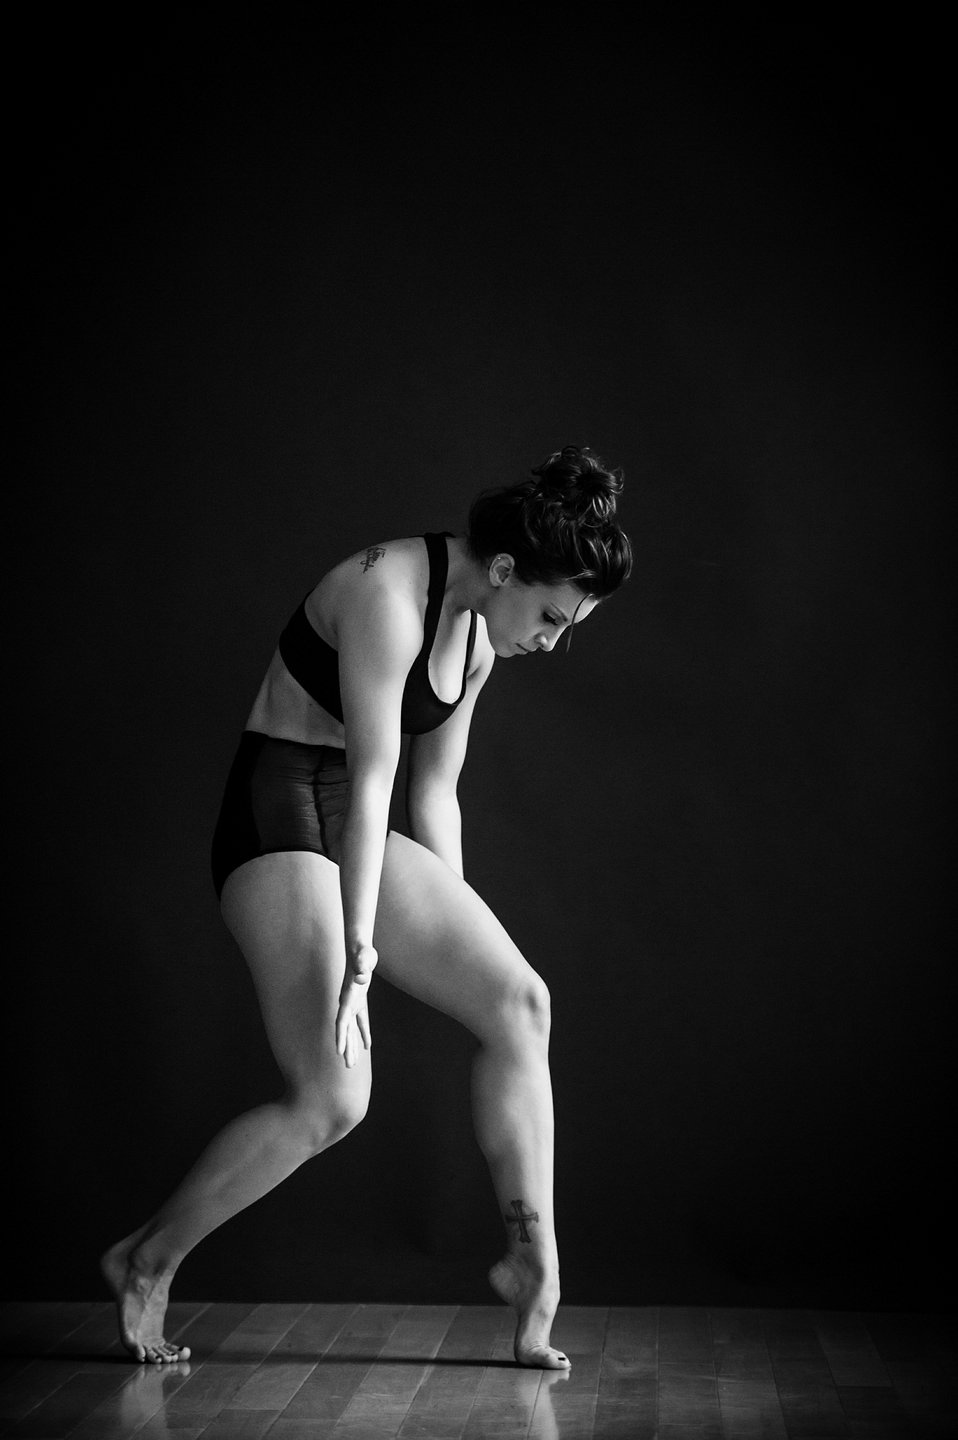 Los Angeles Dance Portrait Photo - Stephanie Abrams - by Tommy Xing Photography 03.jpg